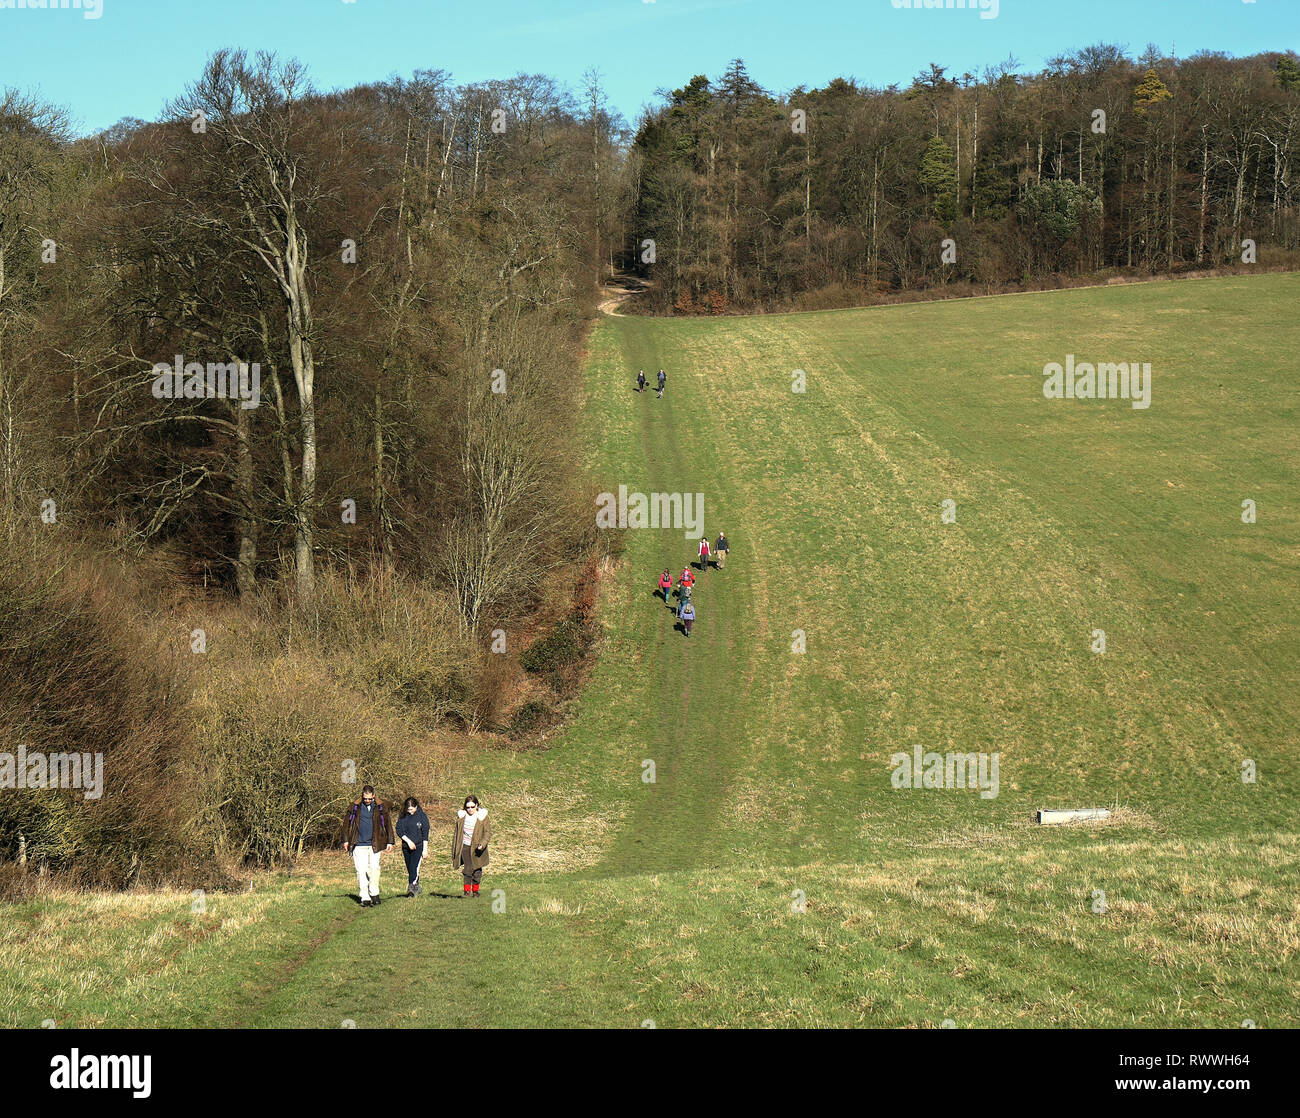 Ramblers on an English Rural Track in the Chiltern Hills in South Oxfordshire - Stock Image